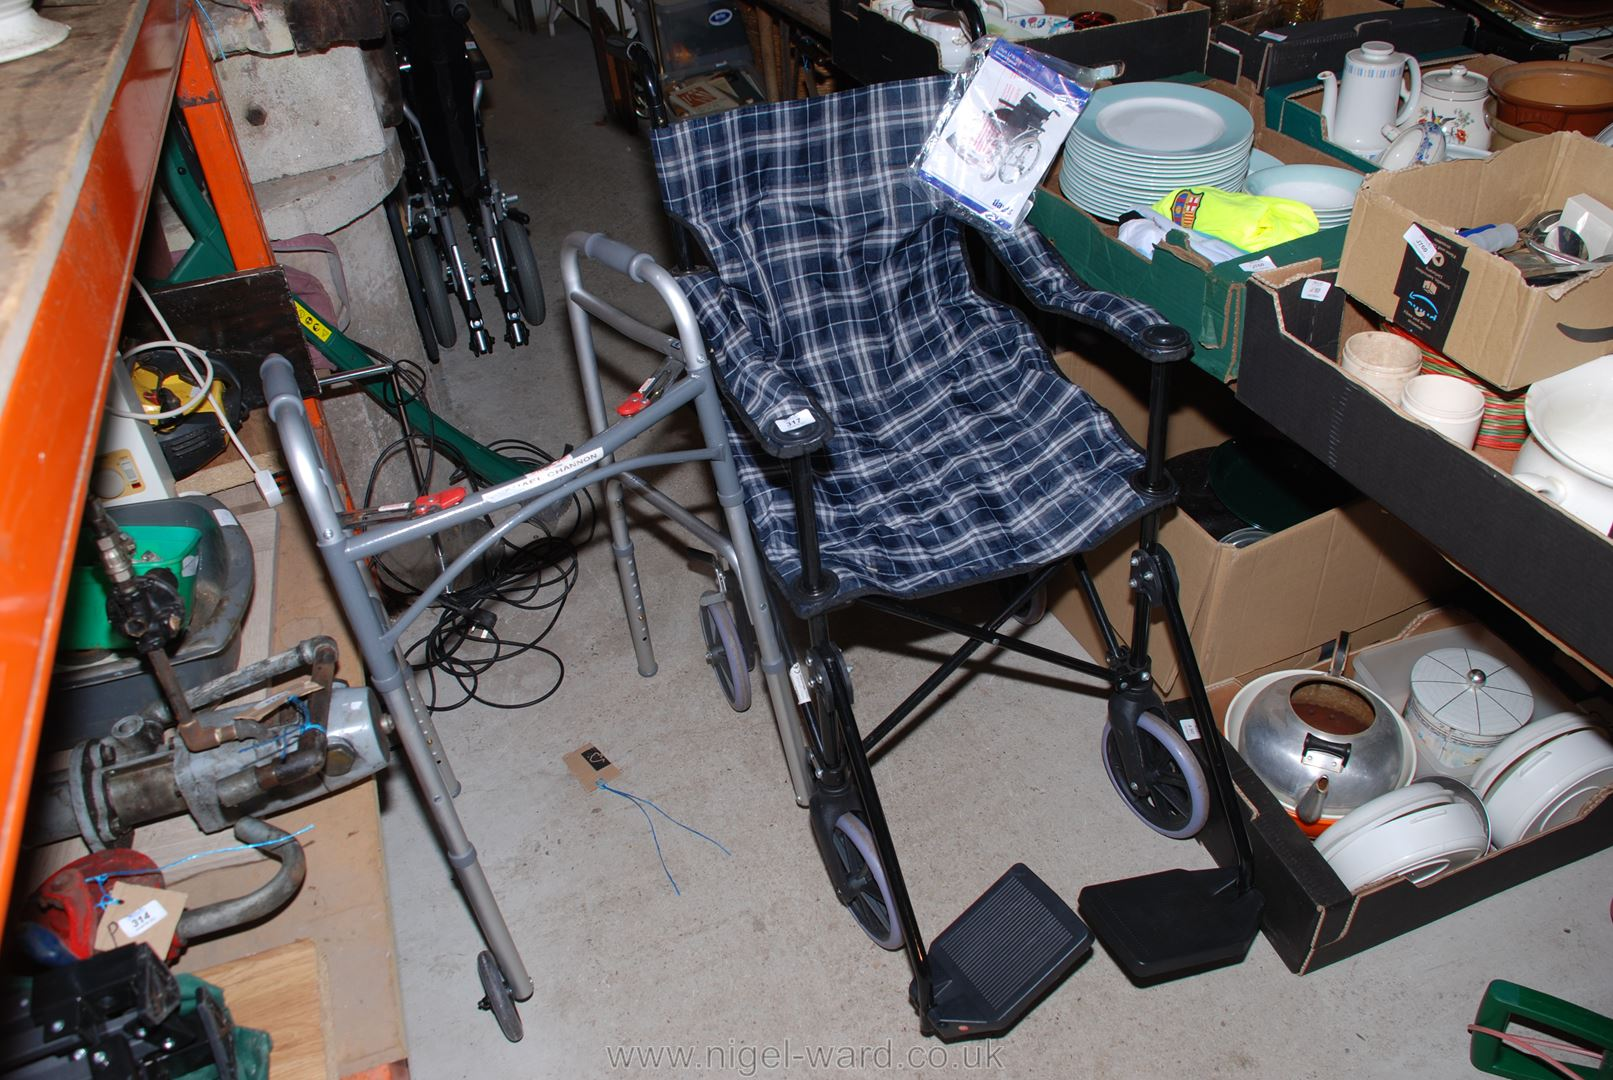 A Days Link wheelchair and a folding walking aid.